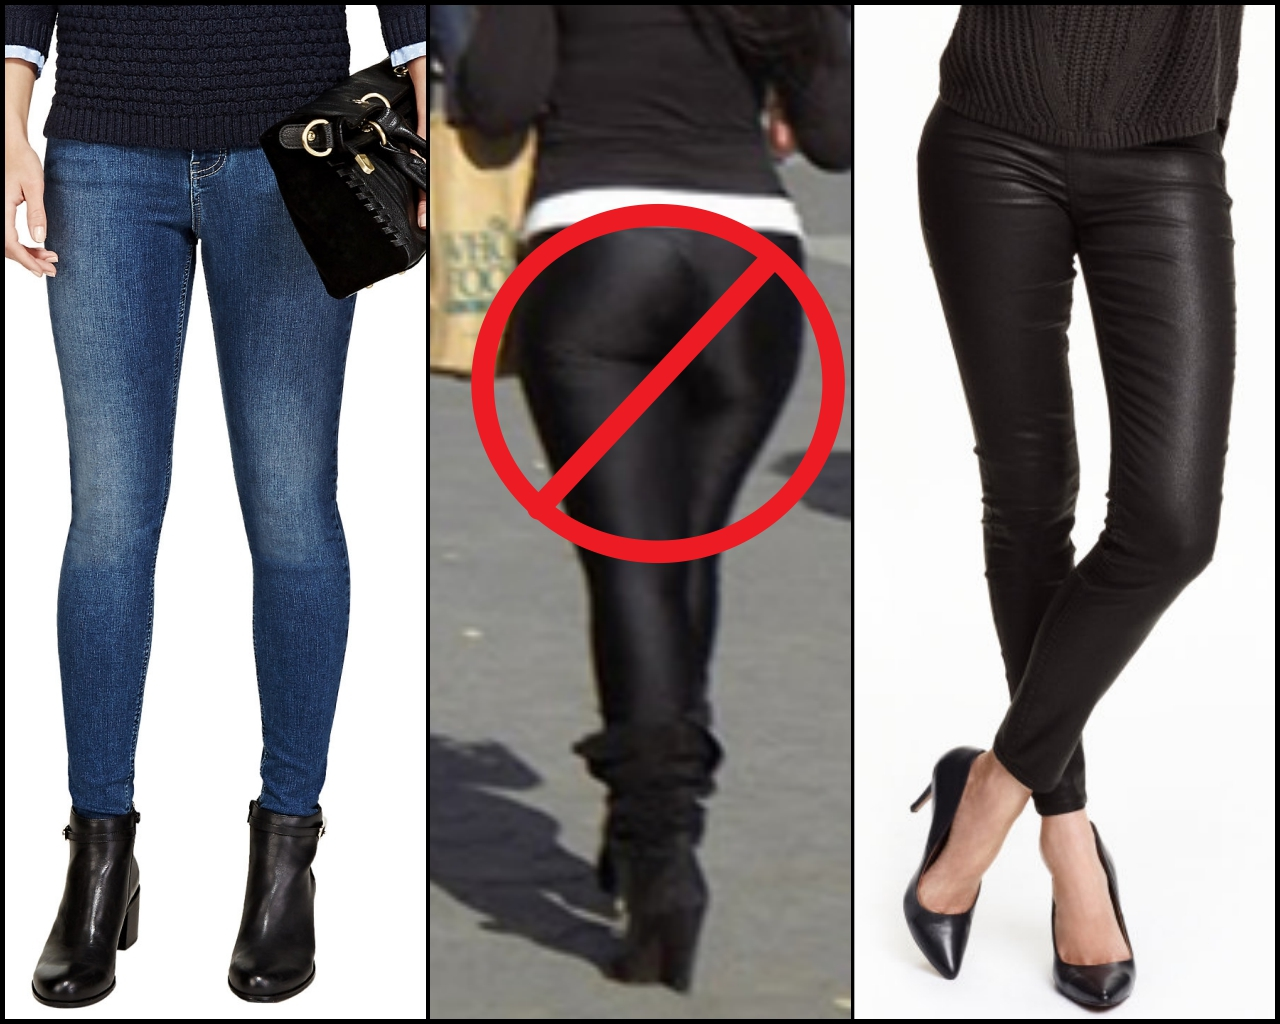 Buy New Womens Jeggings Jeans at Macy's. Shop Online for the Latest Designer Jeggings Jeans for Women at smashingprogrammsrj.tk FREE SHIPPING AVAILABLE!